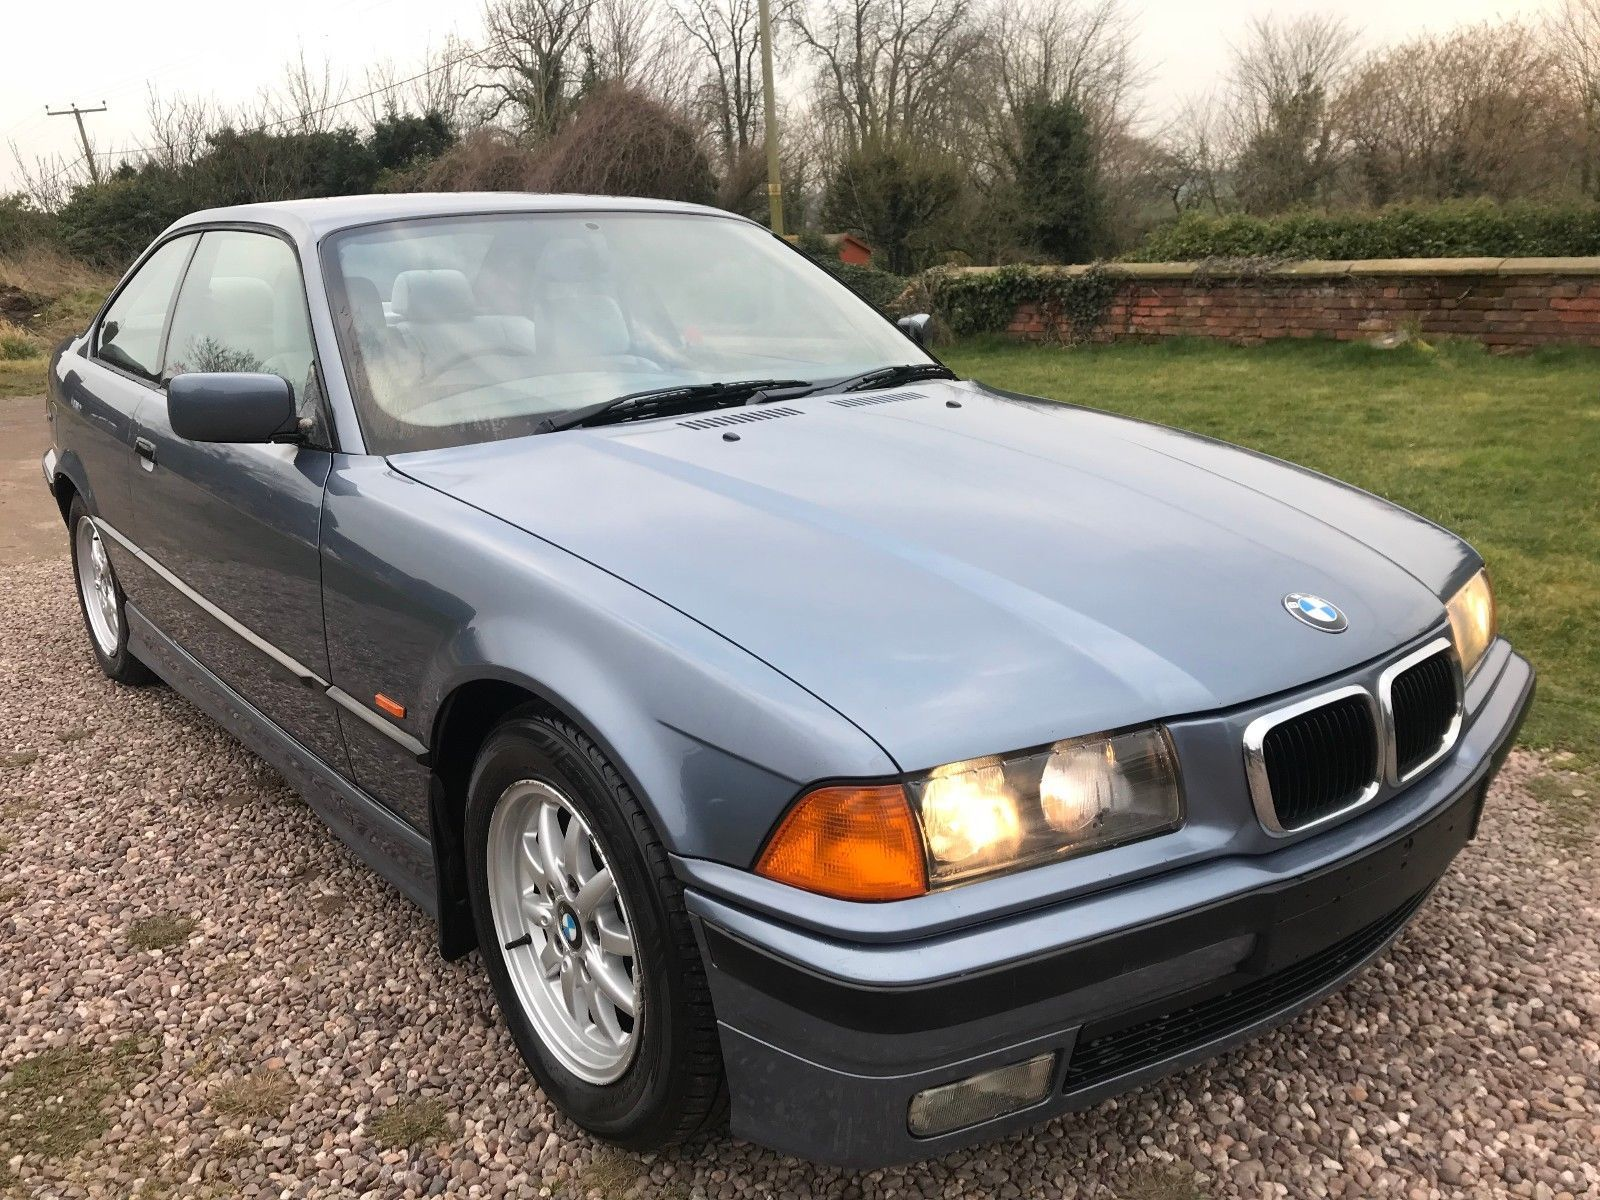 ebay 1999 bmw 323i e36 coupe stahl blue with grey leather project spares or repairs carparts carrepair [ 1600 x 1200 Pixel ]